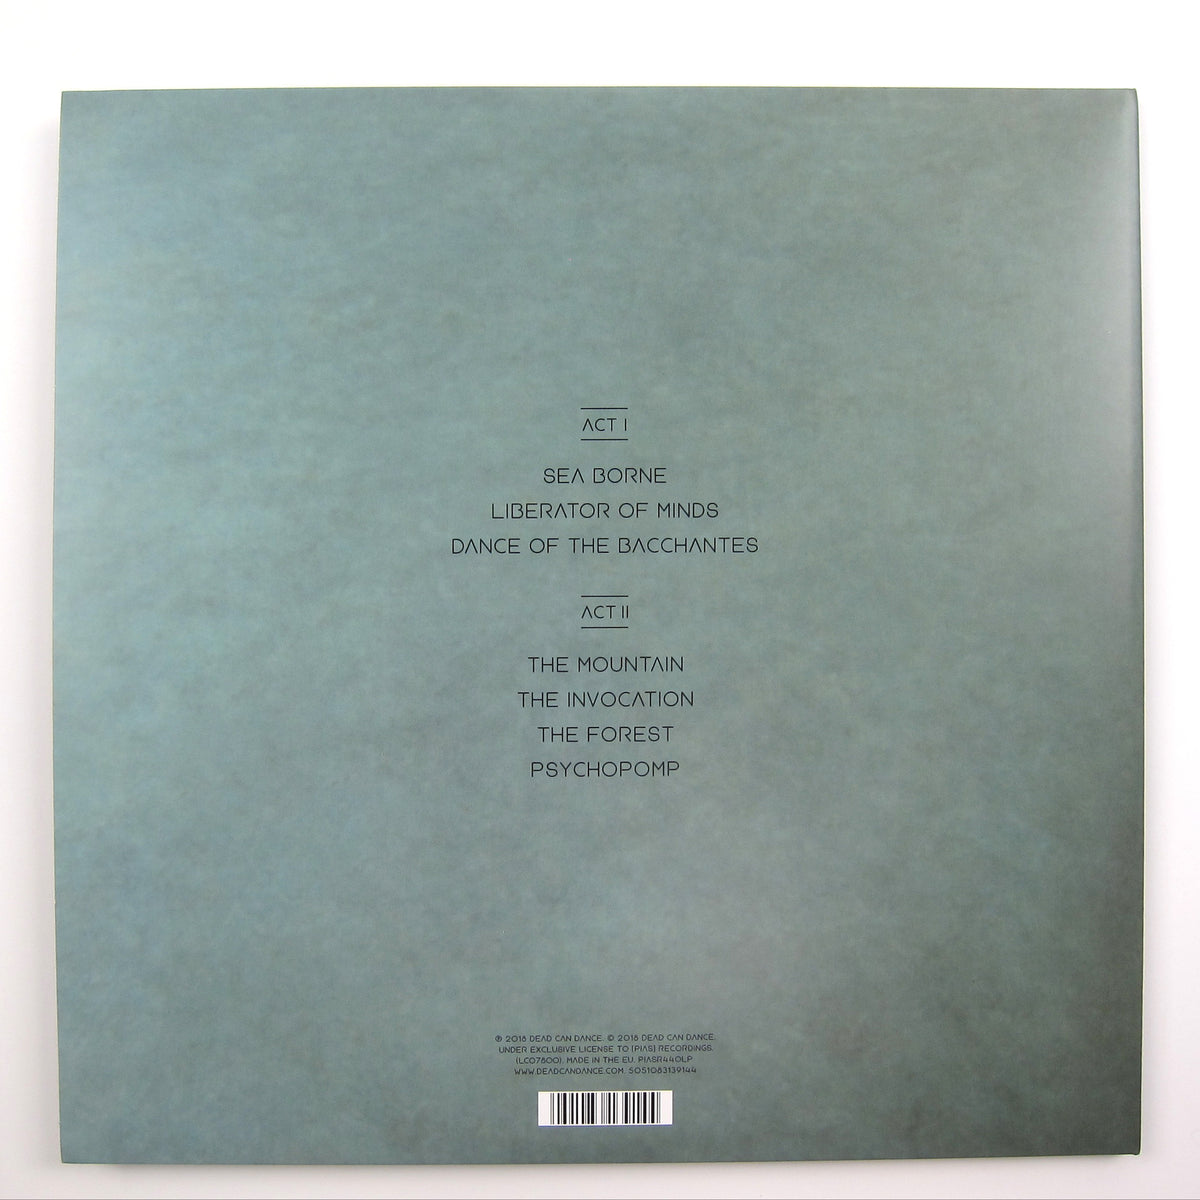 Dead Can Dance: Dionysus Vinyl LP